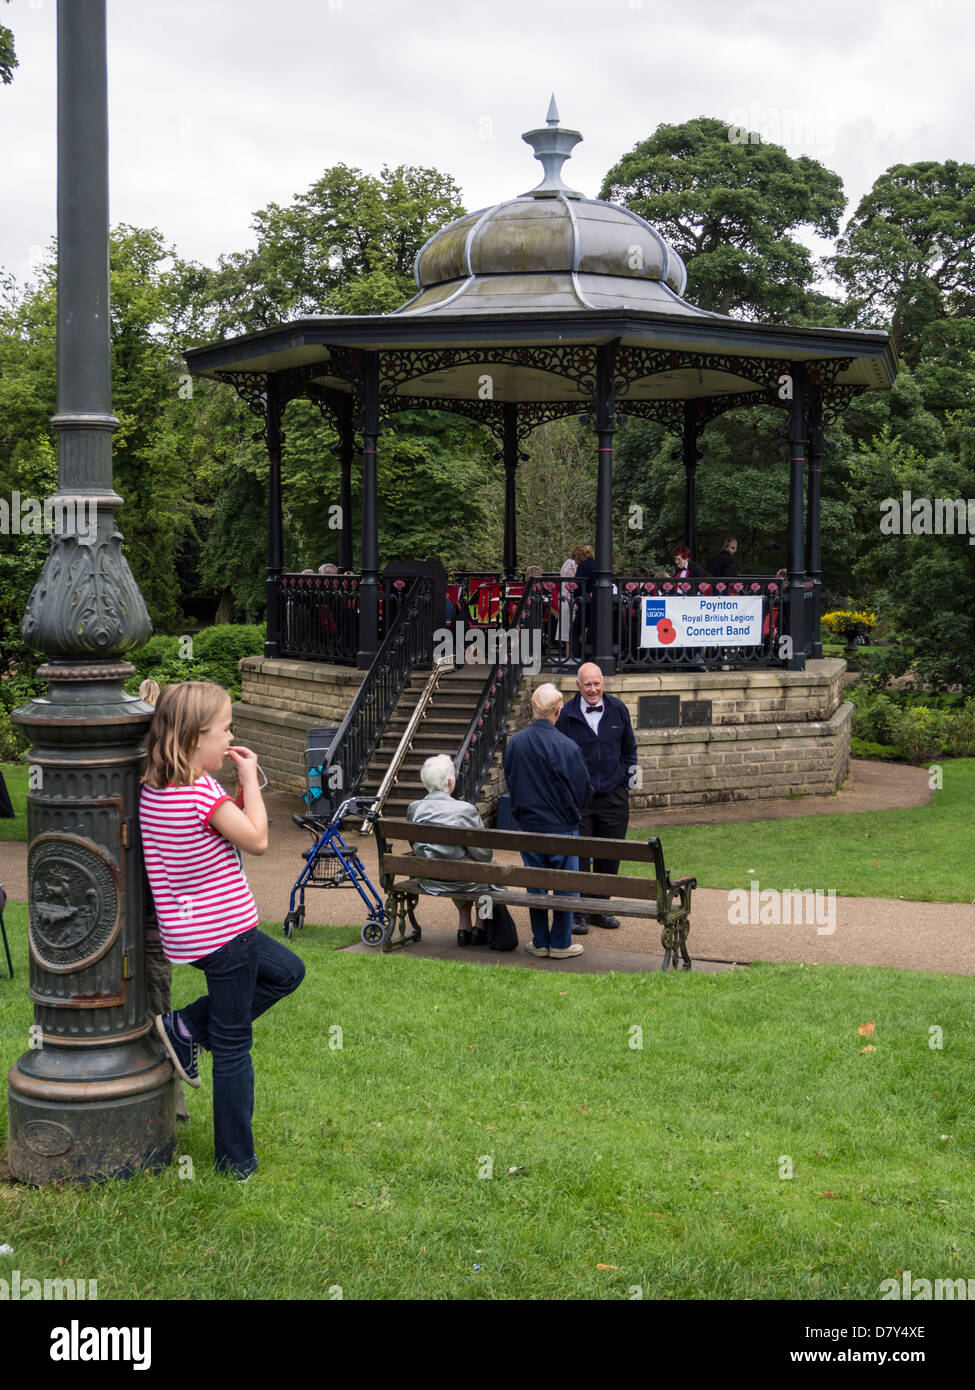 Young child /girl leaning against a lamp post with elderly people and Buxtons bandstand  in background Derbyshire - Stock Image